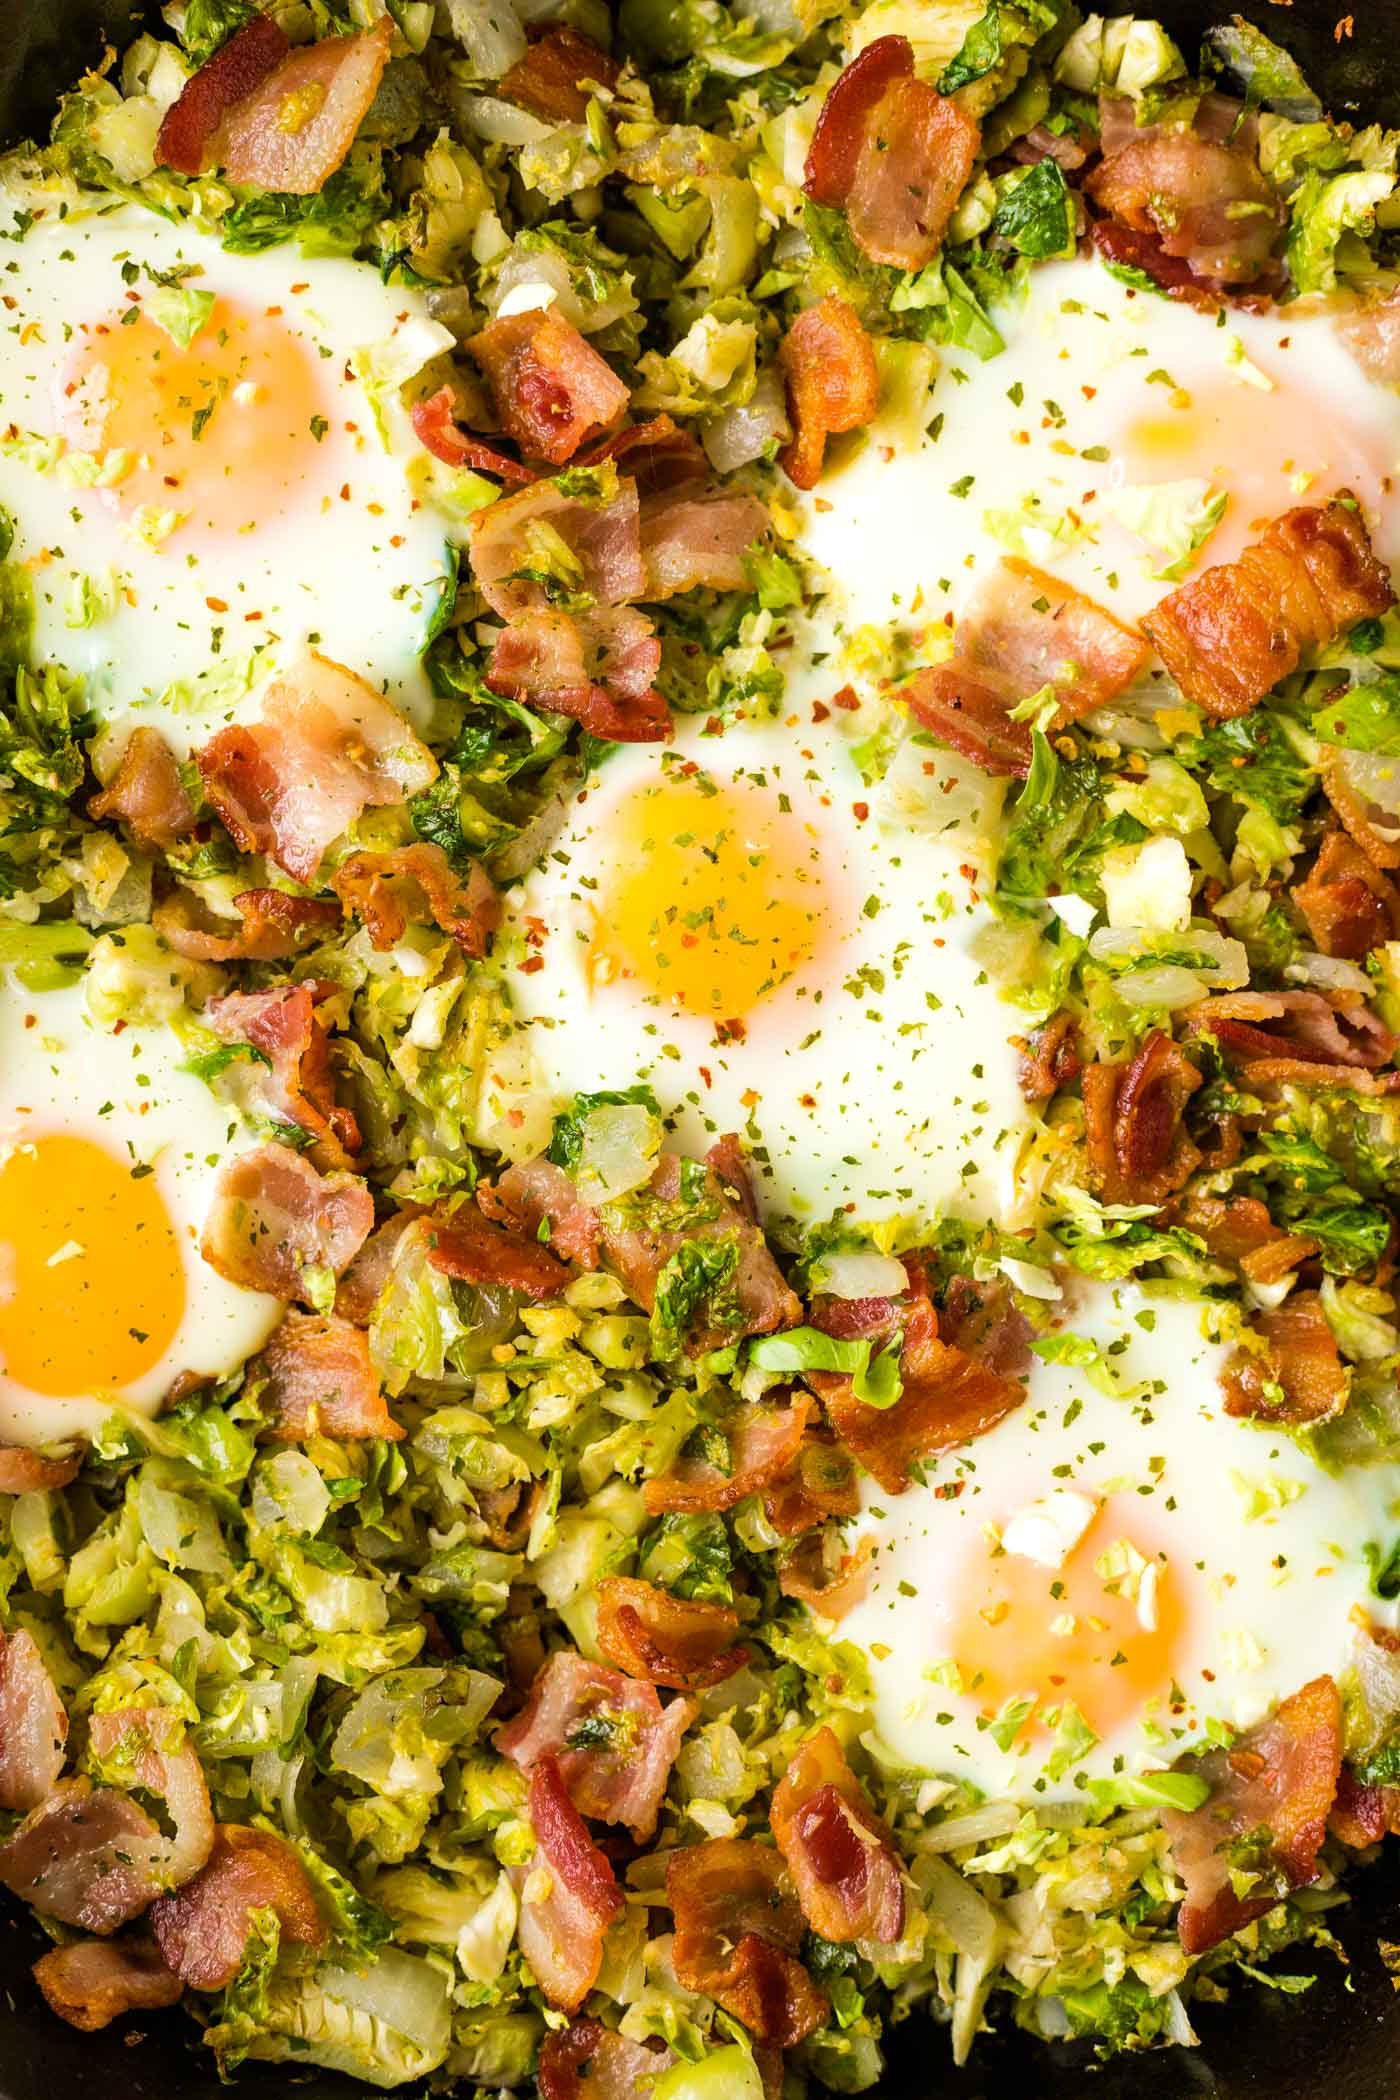 Close-up shot of shredded Brussels sprouts, crispy bacon, and runny eggs